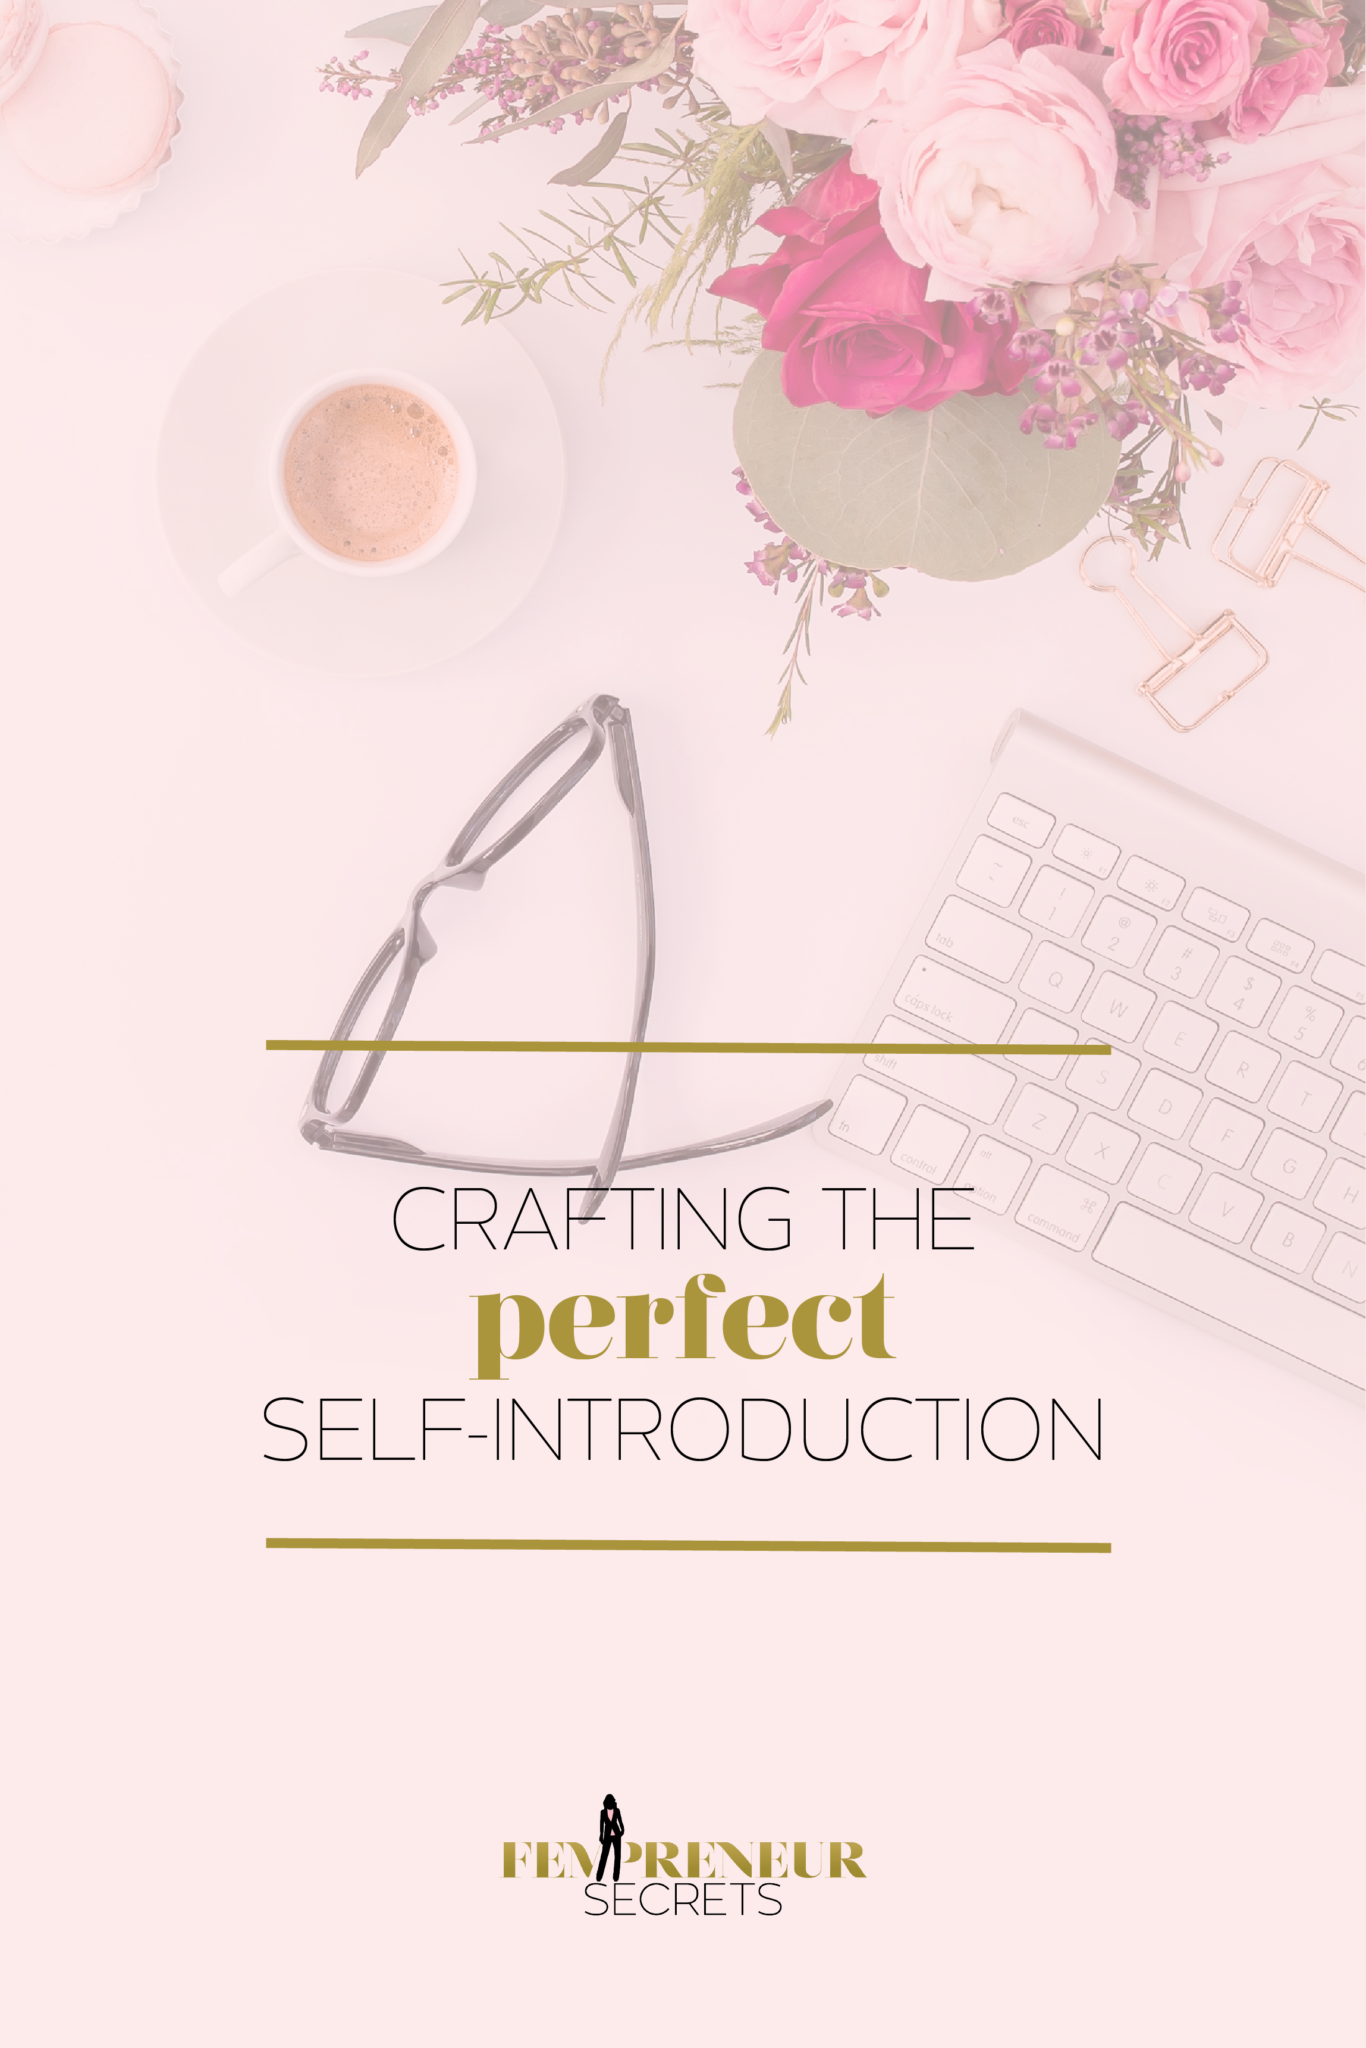 017-Crafting-the-Perfect-Self-Introduction_Pinterest-2.png